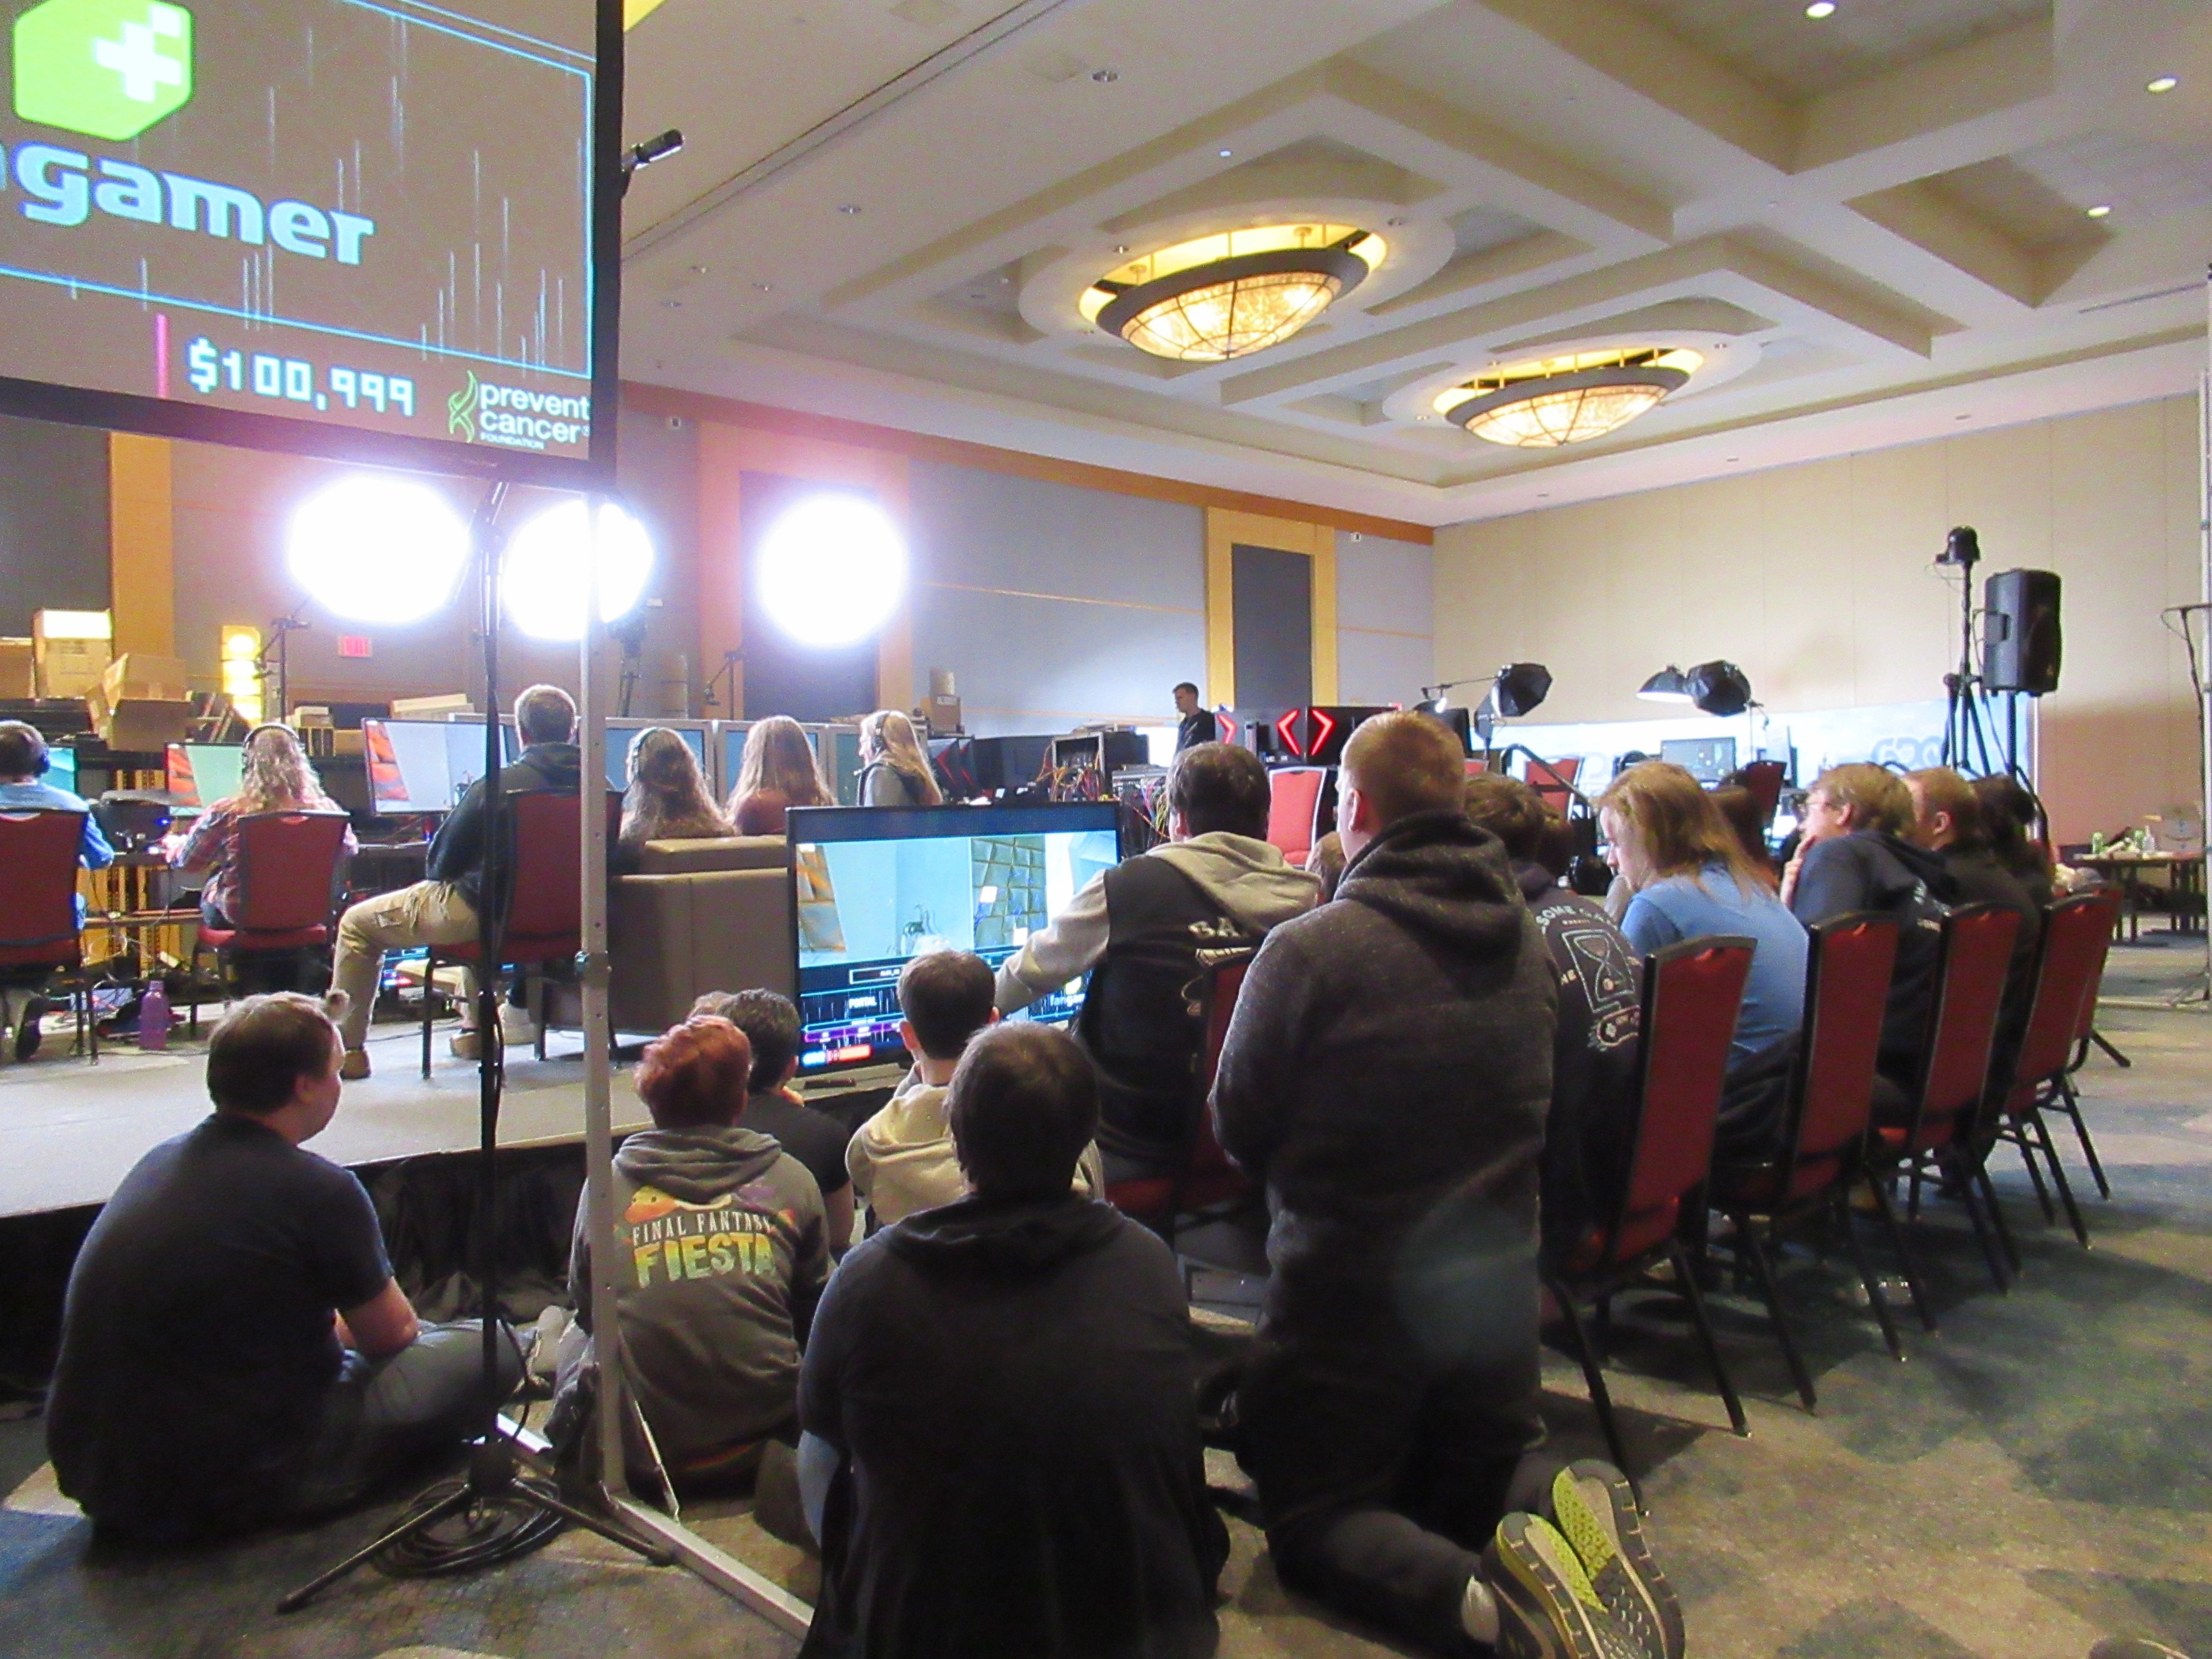 A gathering of people behind the stage of GDQ around the backup couch. The backup couch is positioned in front of a TV.